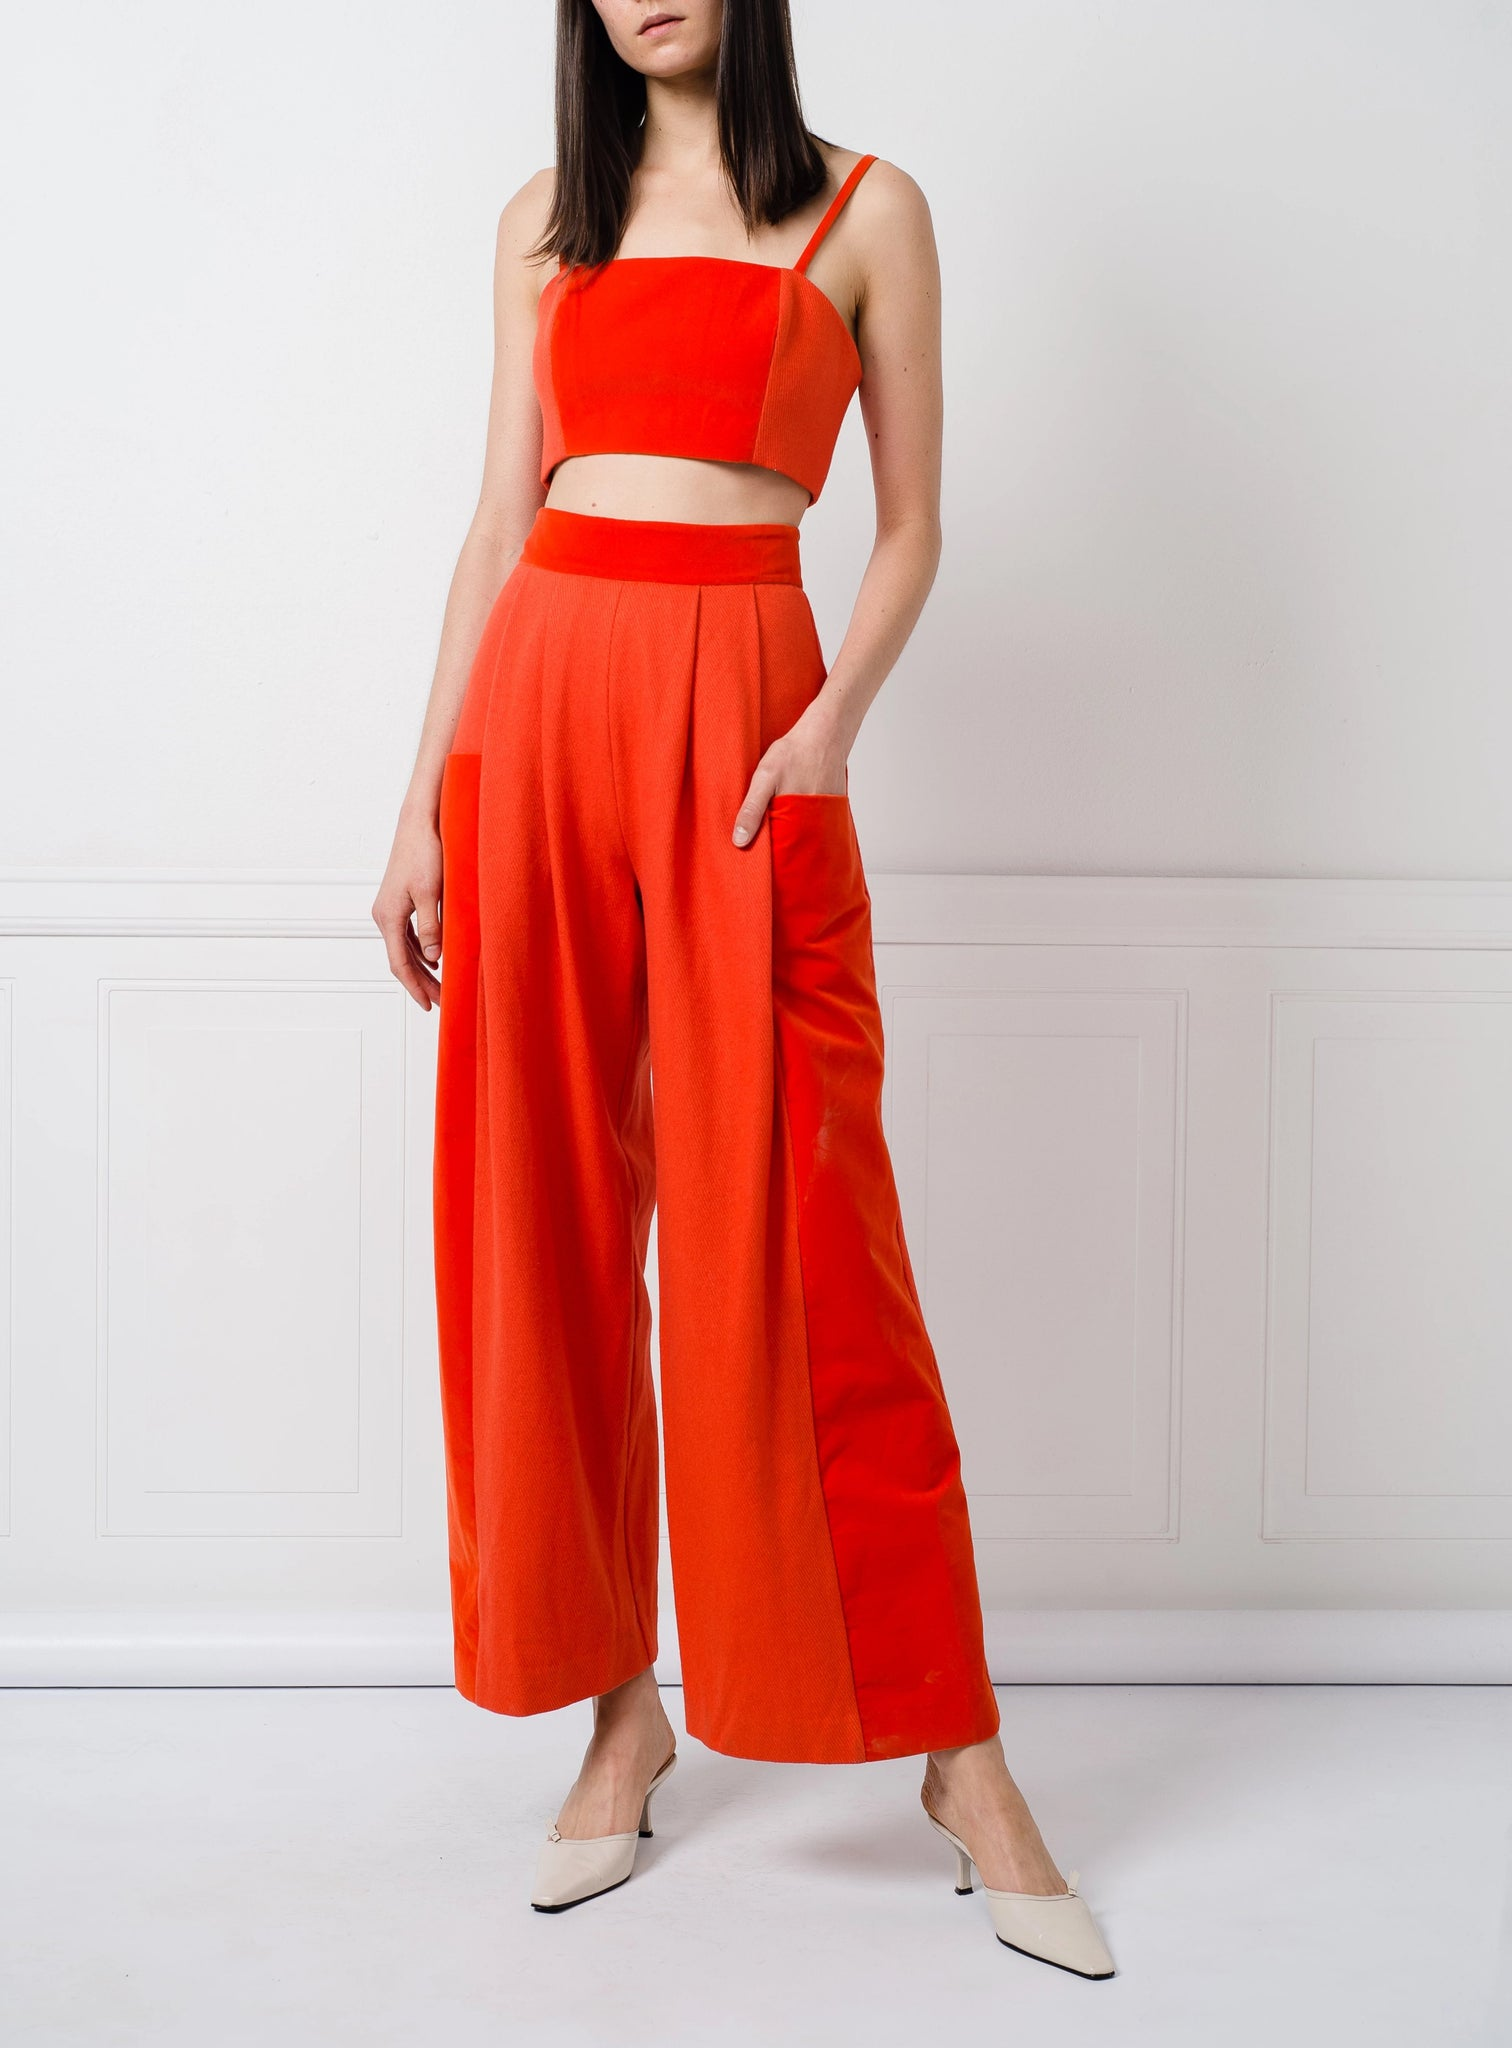 SALE | Paige Pants in Orange